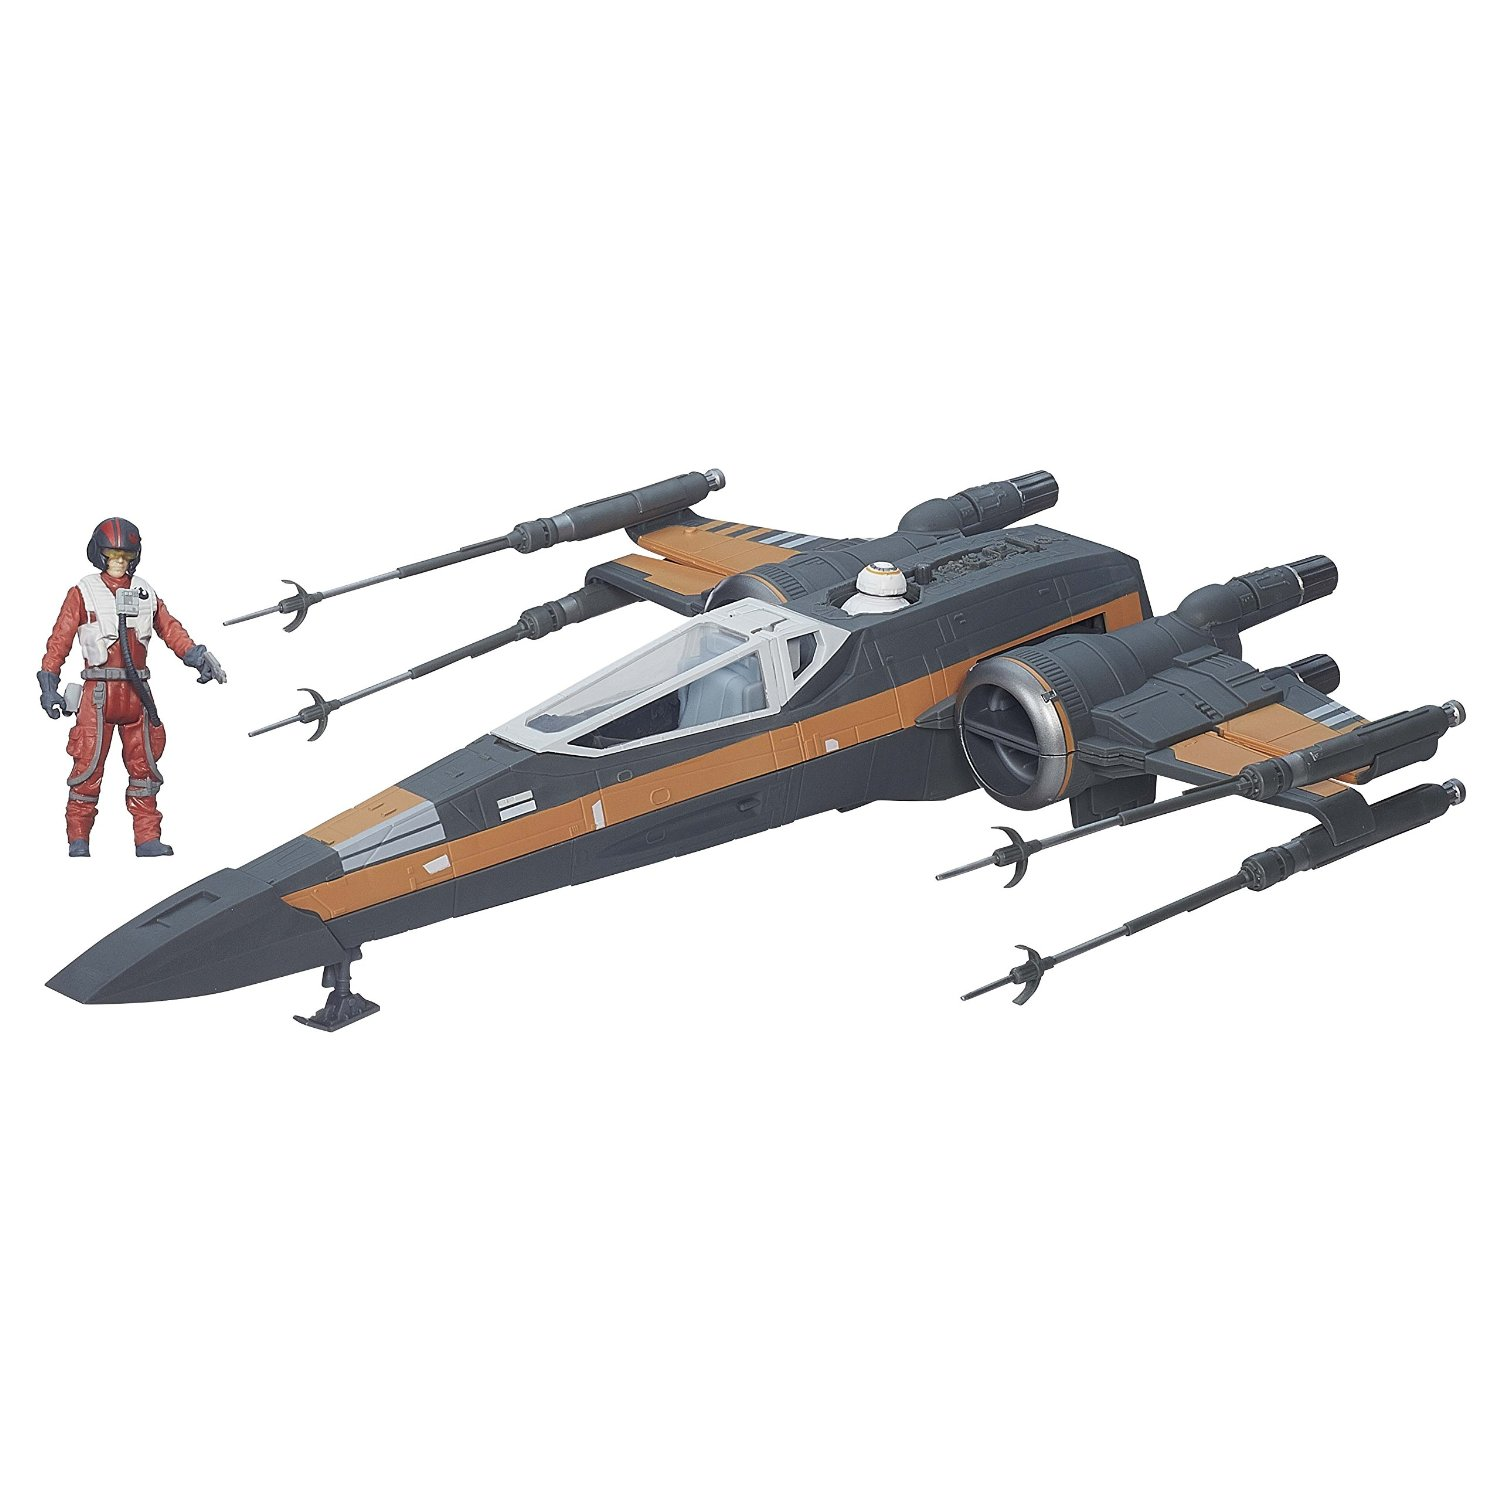 The Force Awakens X-Wing Toy